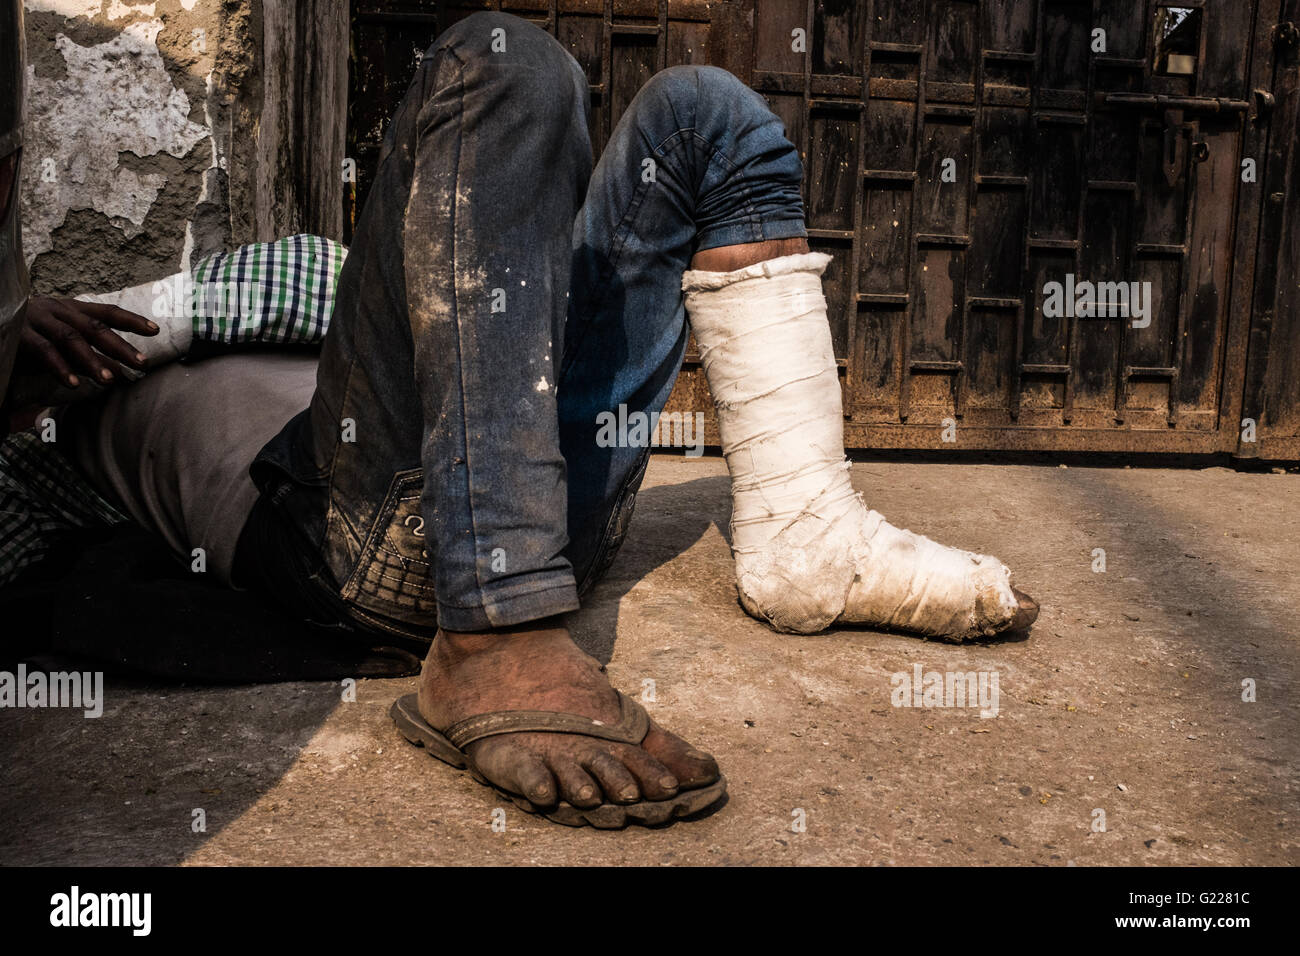 Man with cast on his foot & hand sleeping on the floor in Delhi